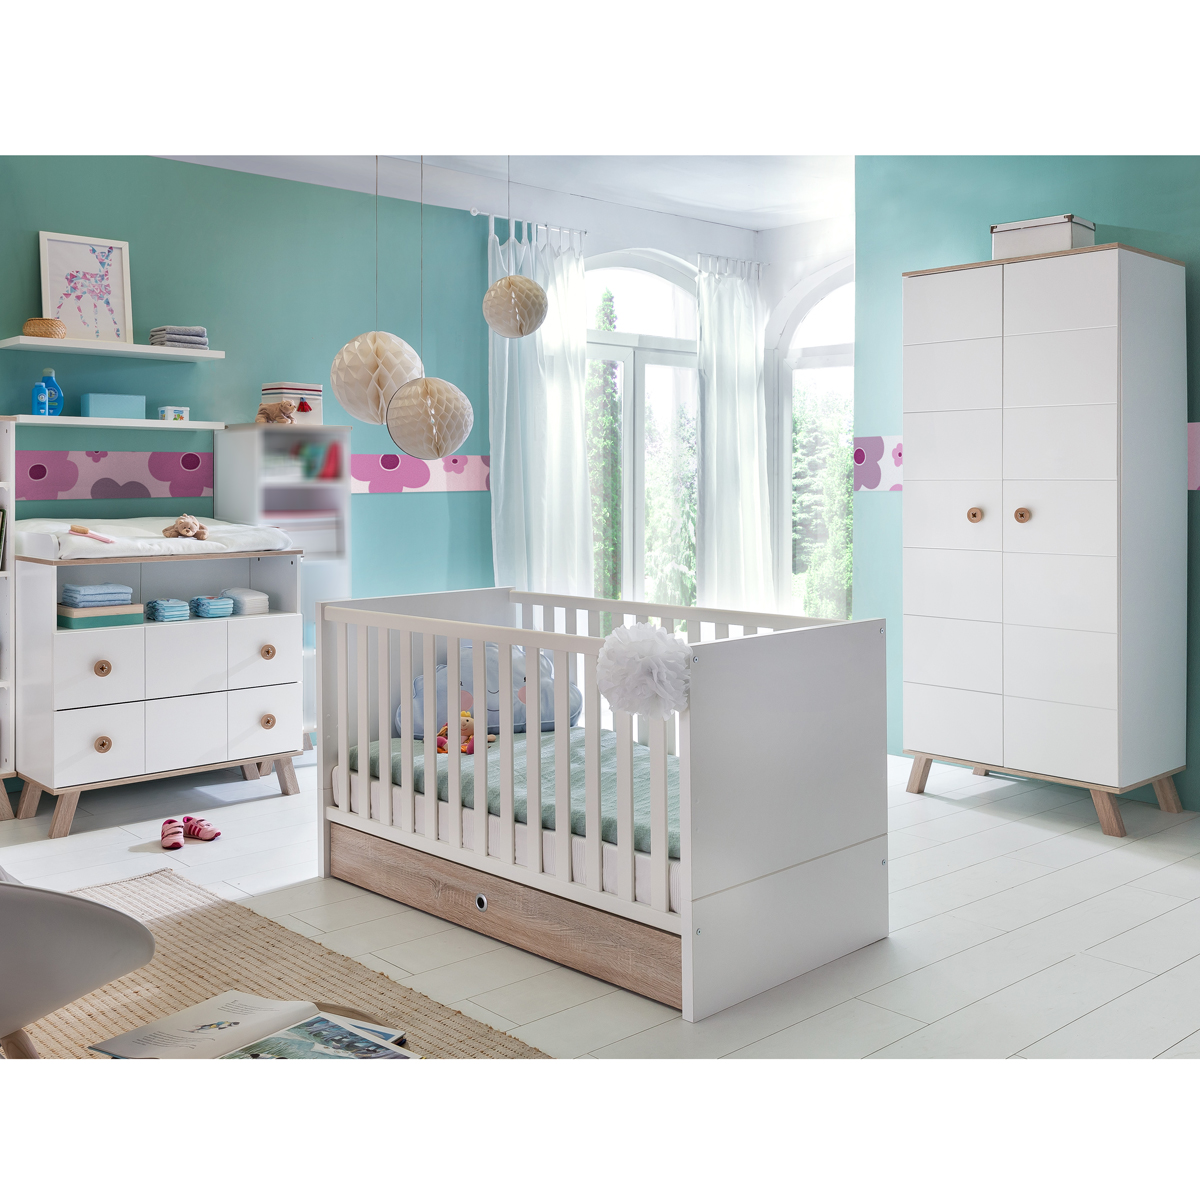 babyzimmer set billu kinderzimmer baby erstausstattung. Black Bedroom Furniture Sets. Home Design Ideas